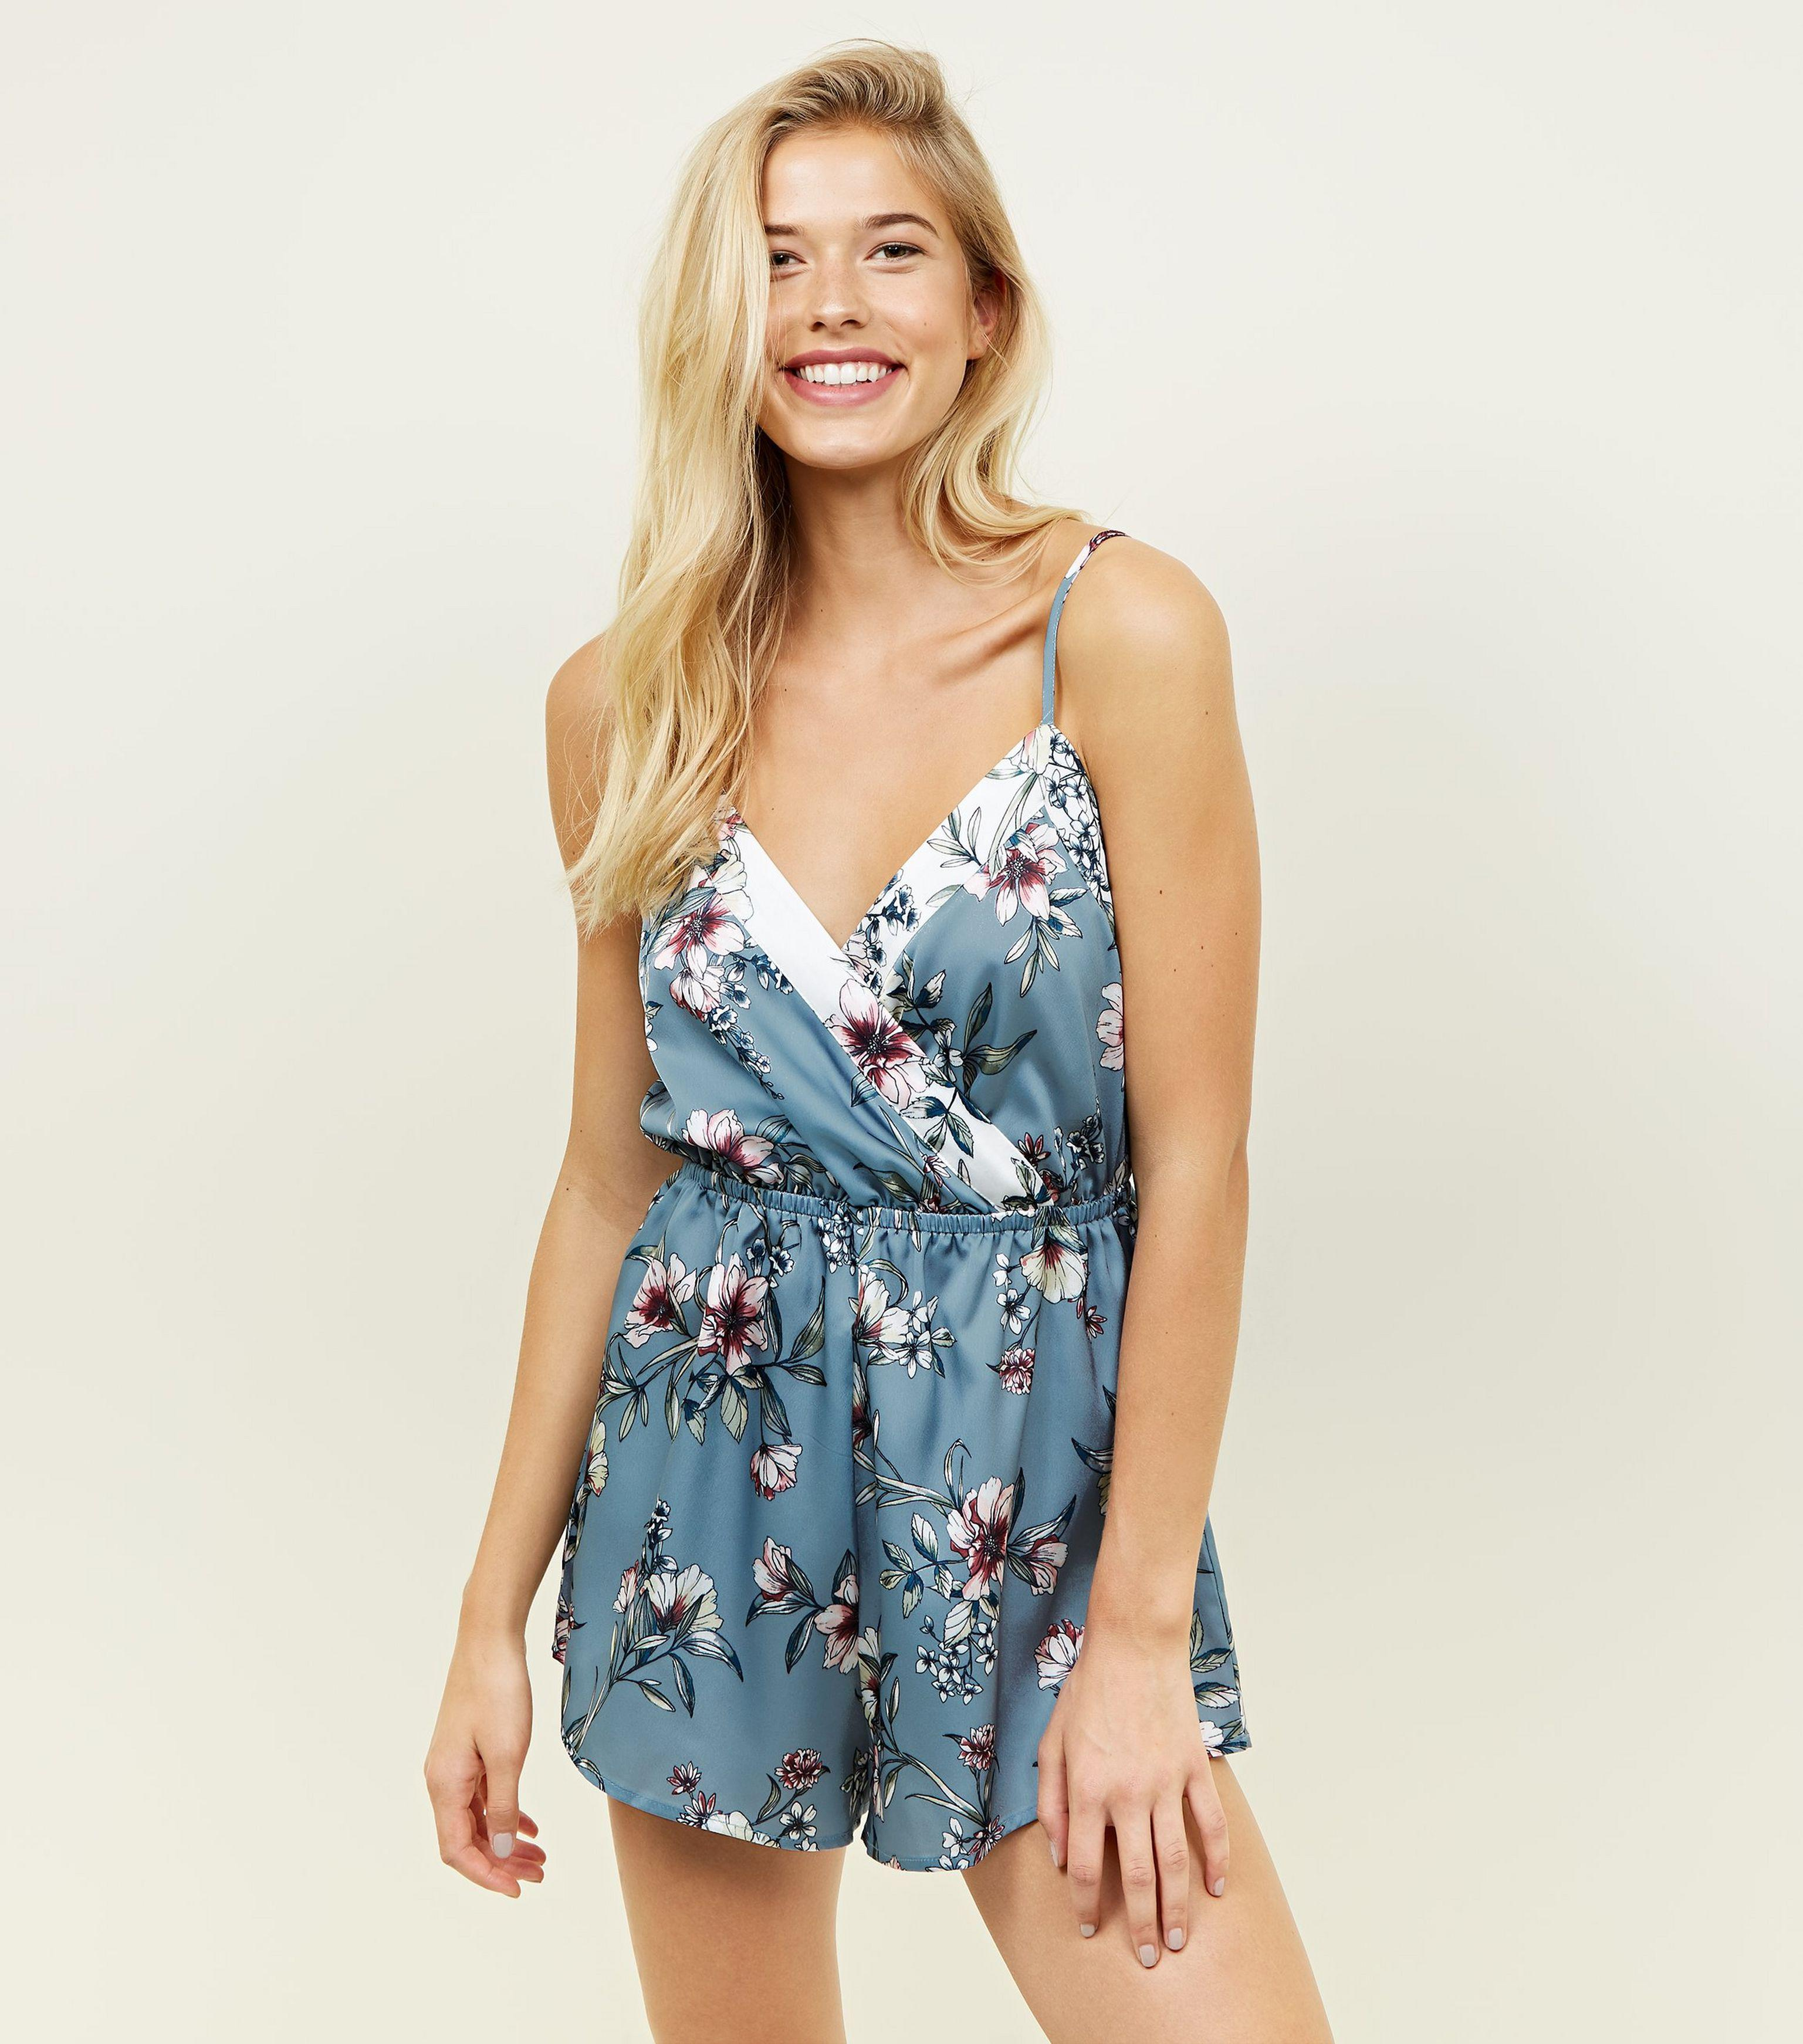 f93a397789 New Look Nicola Blue Floral Satin Pyjama Playsuit in Blue - Lyst